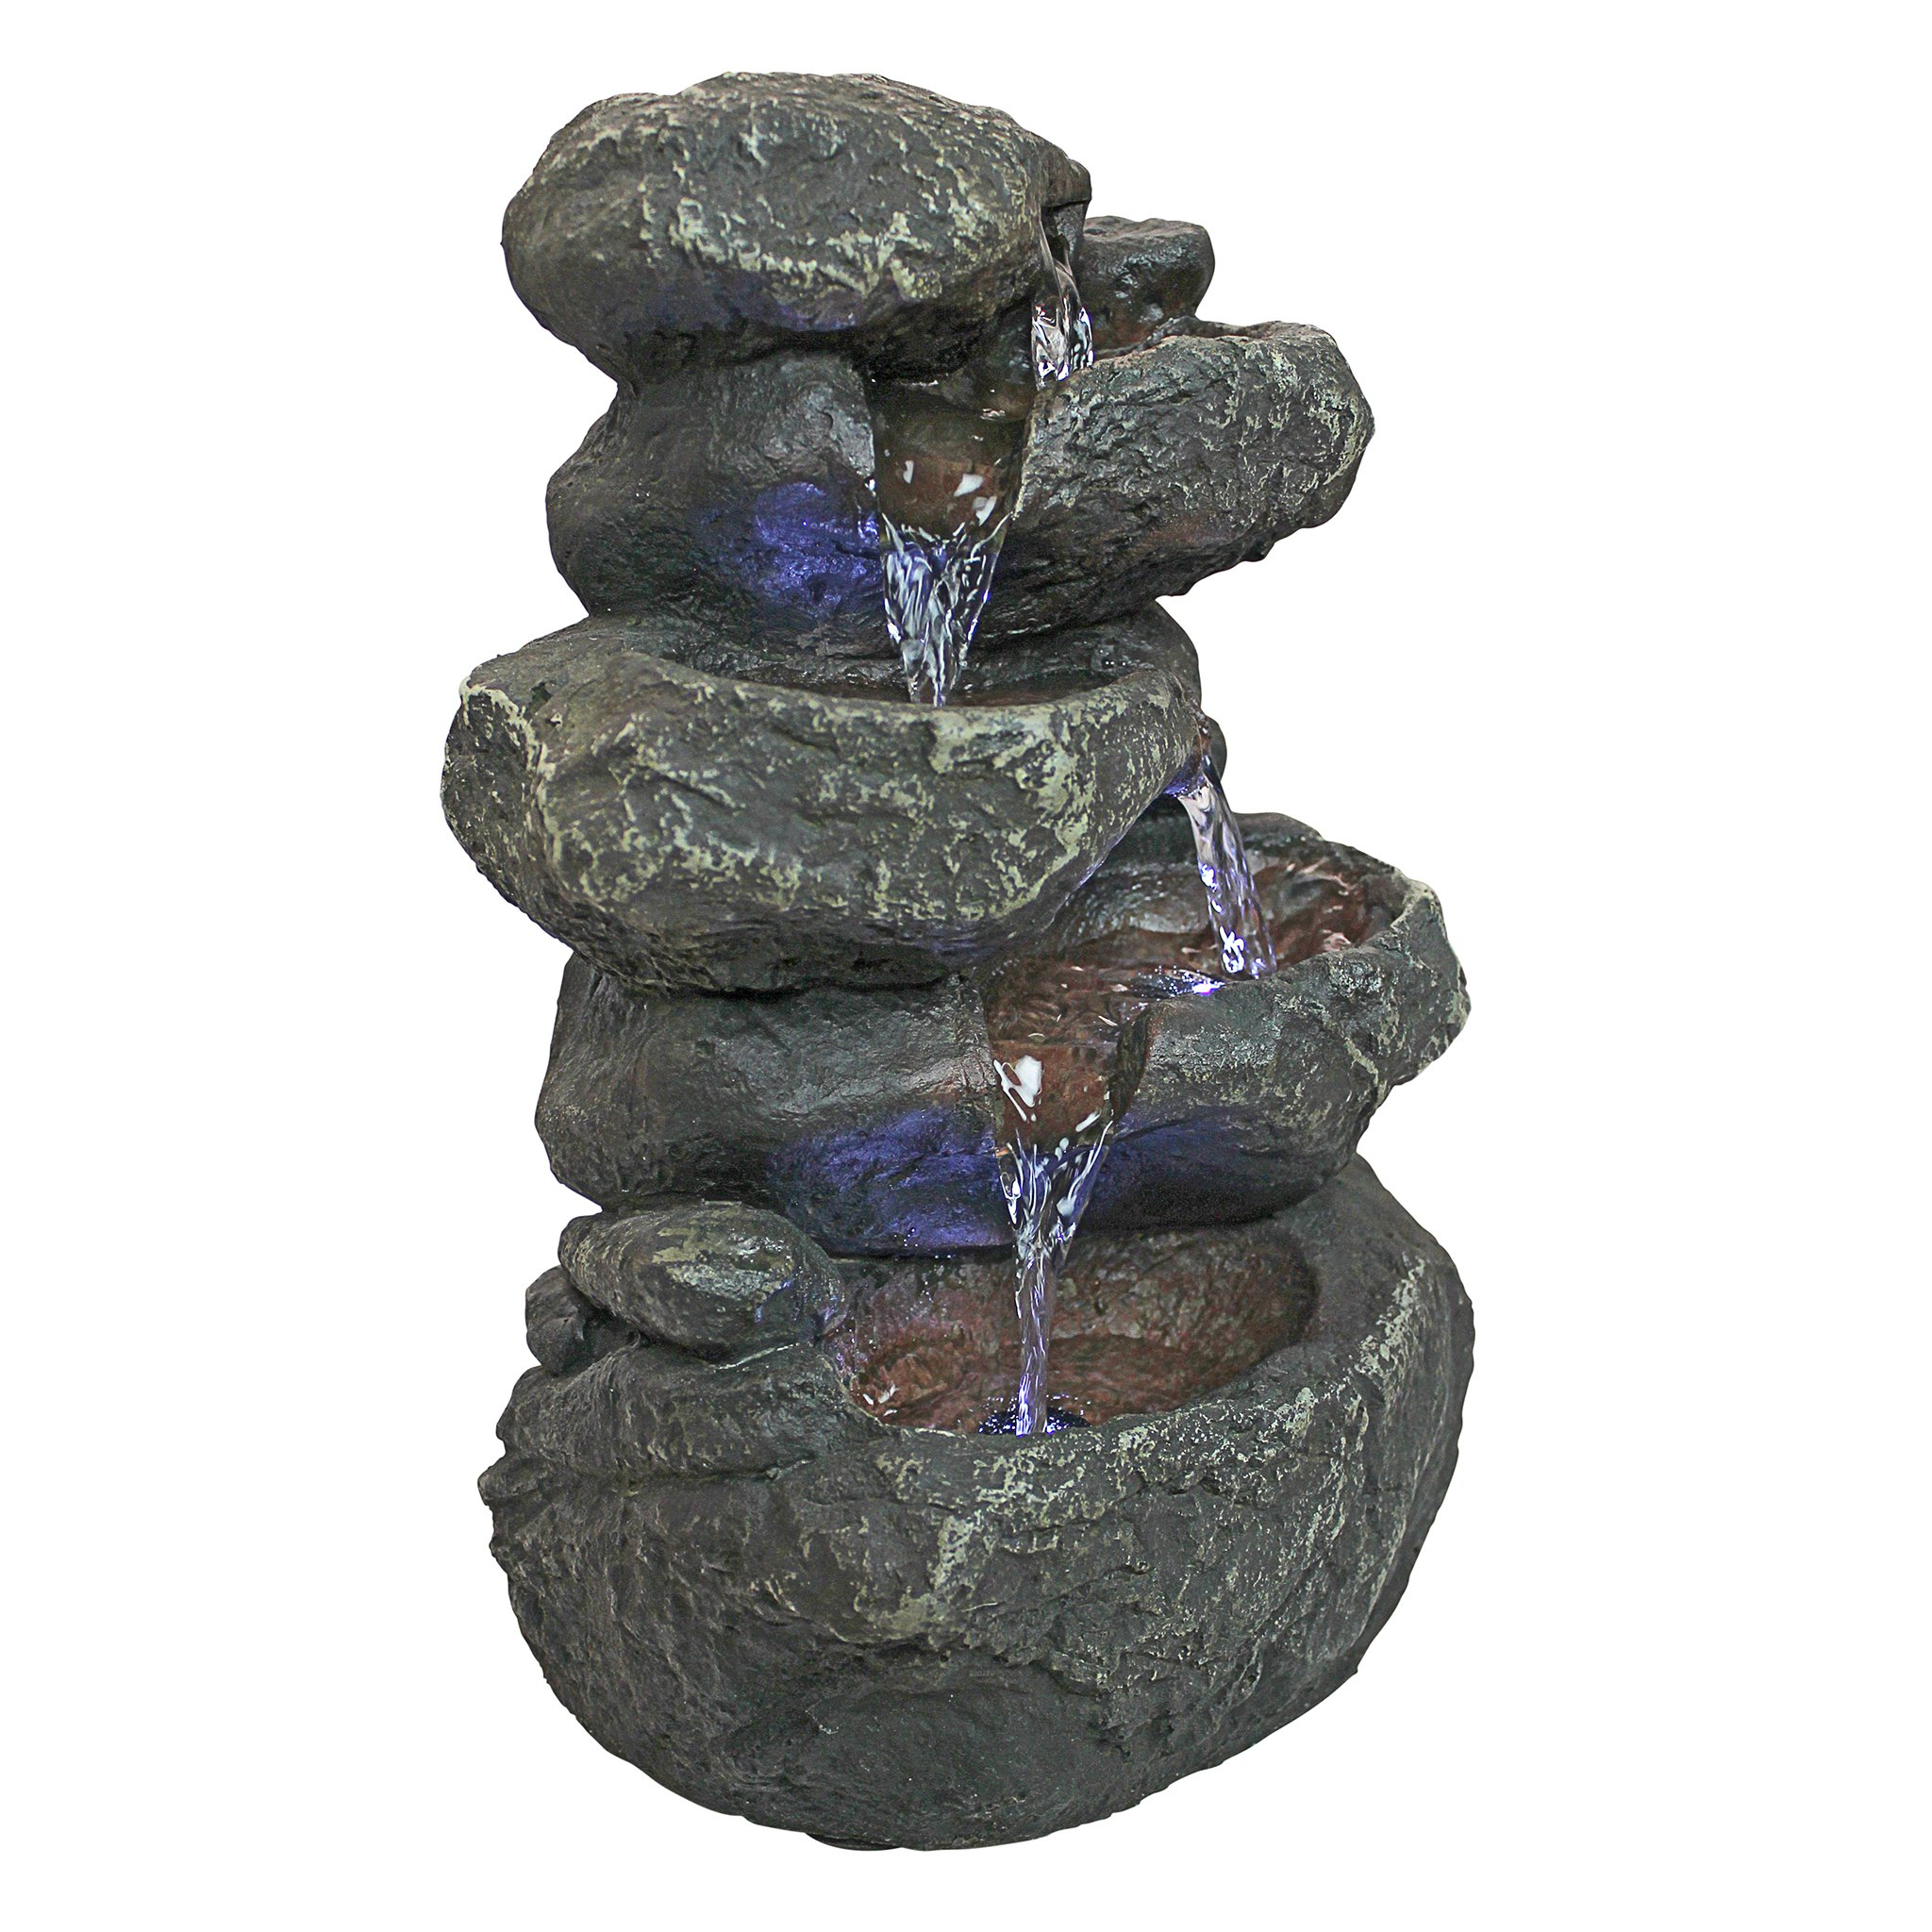 Design Toscano Anchor Falls Rock Garden Decor Tabletop Desk Fountain Water Feature, 11 Inch, Polyresin with LED Lights, Full Color